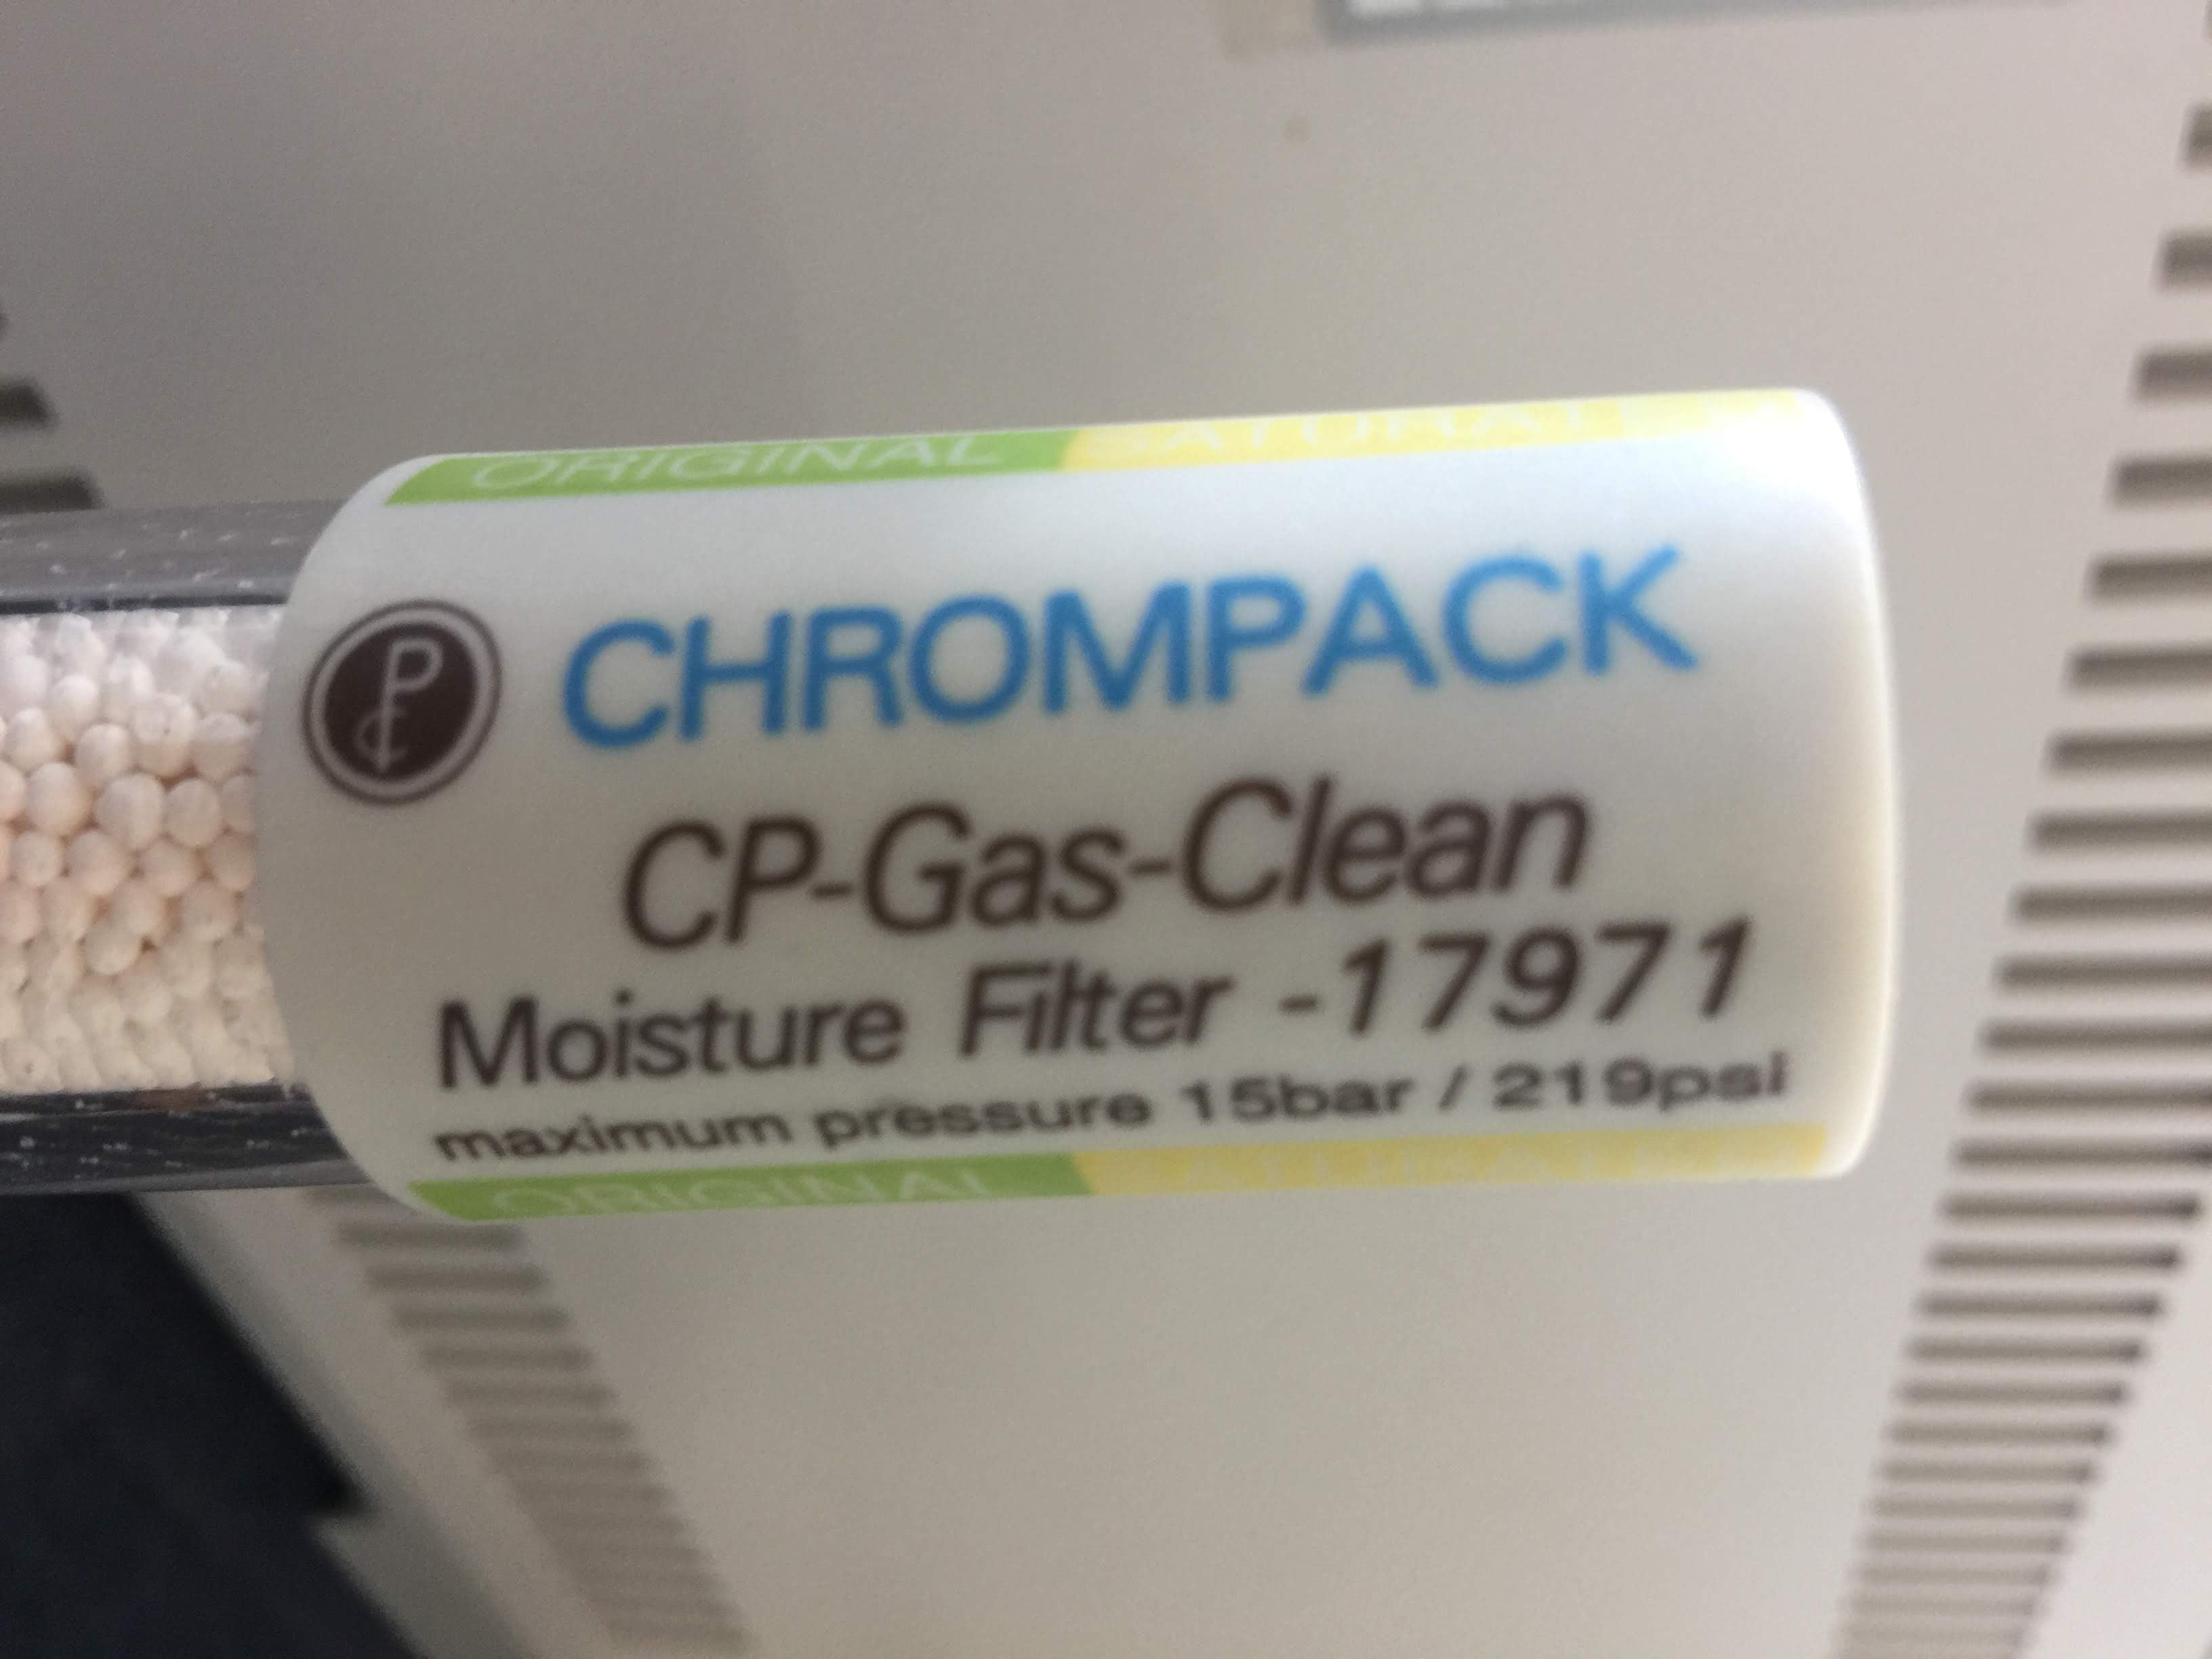 Chrompack CP-Gas-Clean Moisture Filter